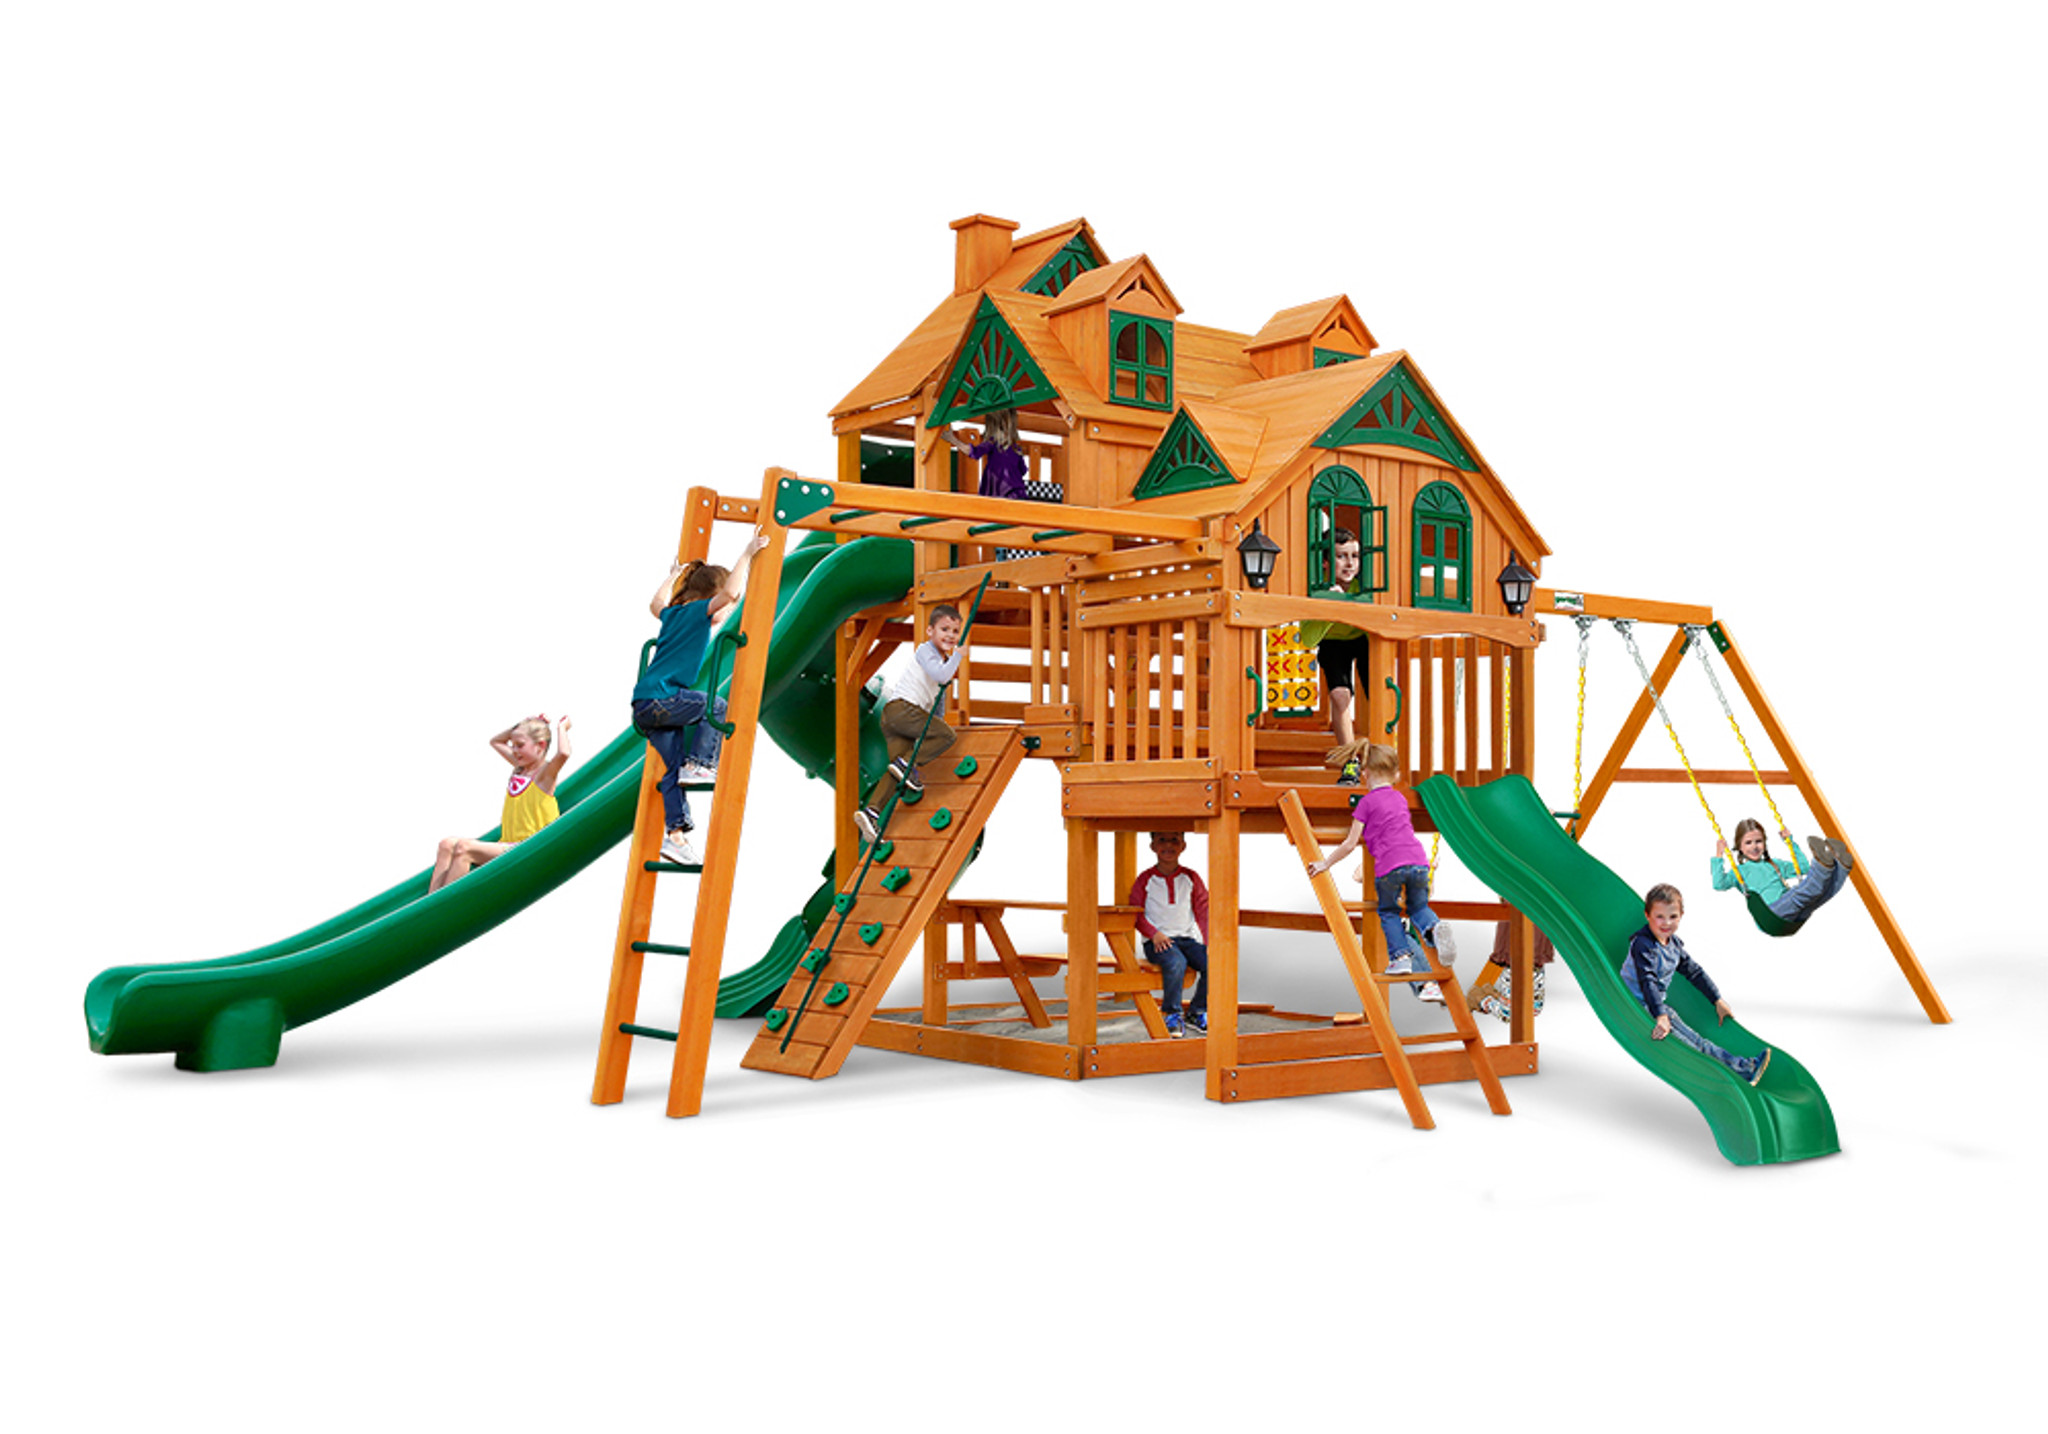 Studio front view of Empire Play Set from Playnation